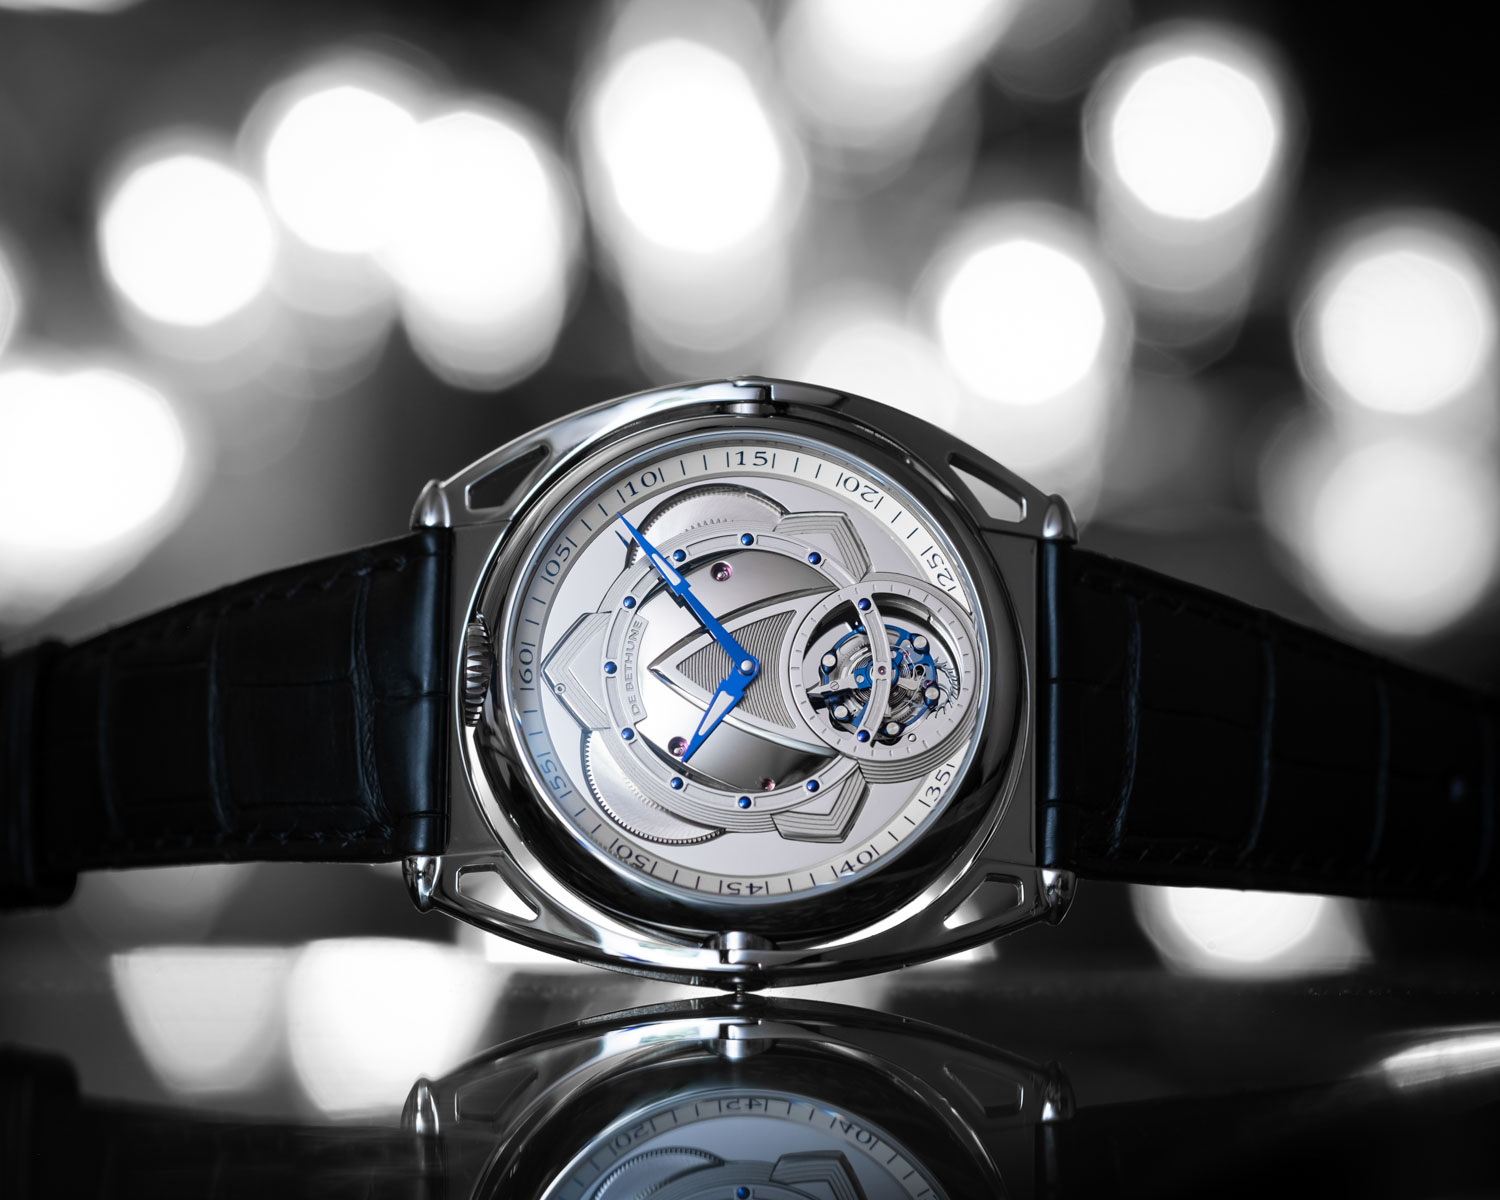 The two-sided De Bethune DB Kind of Two Tourbillon